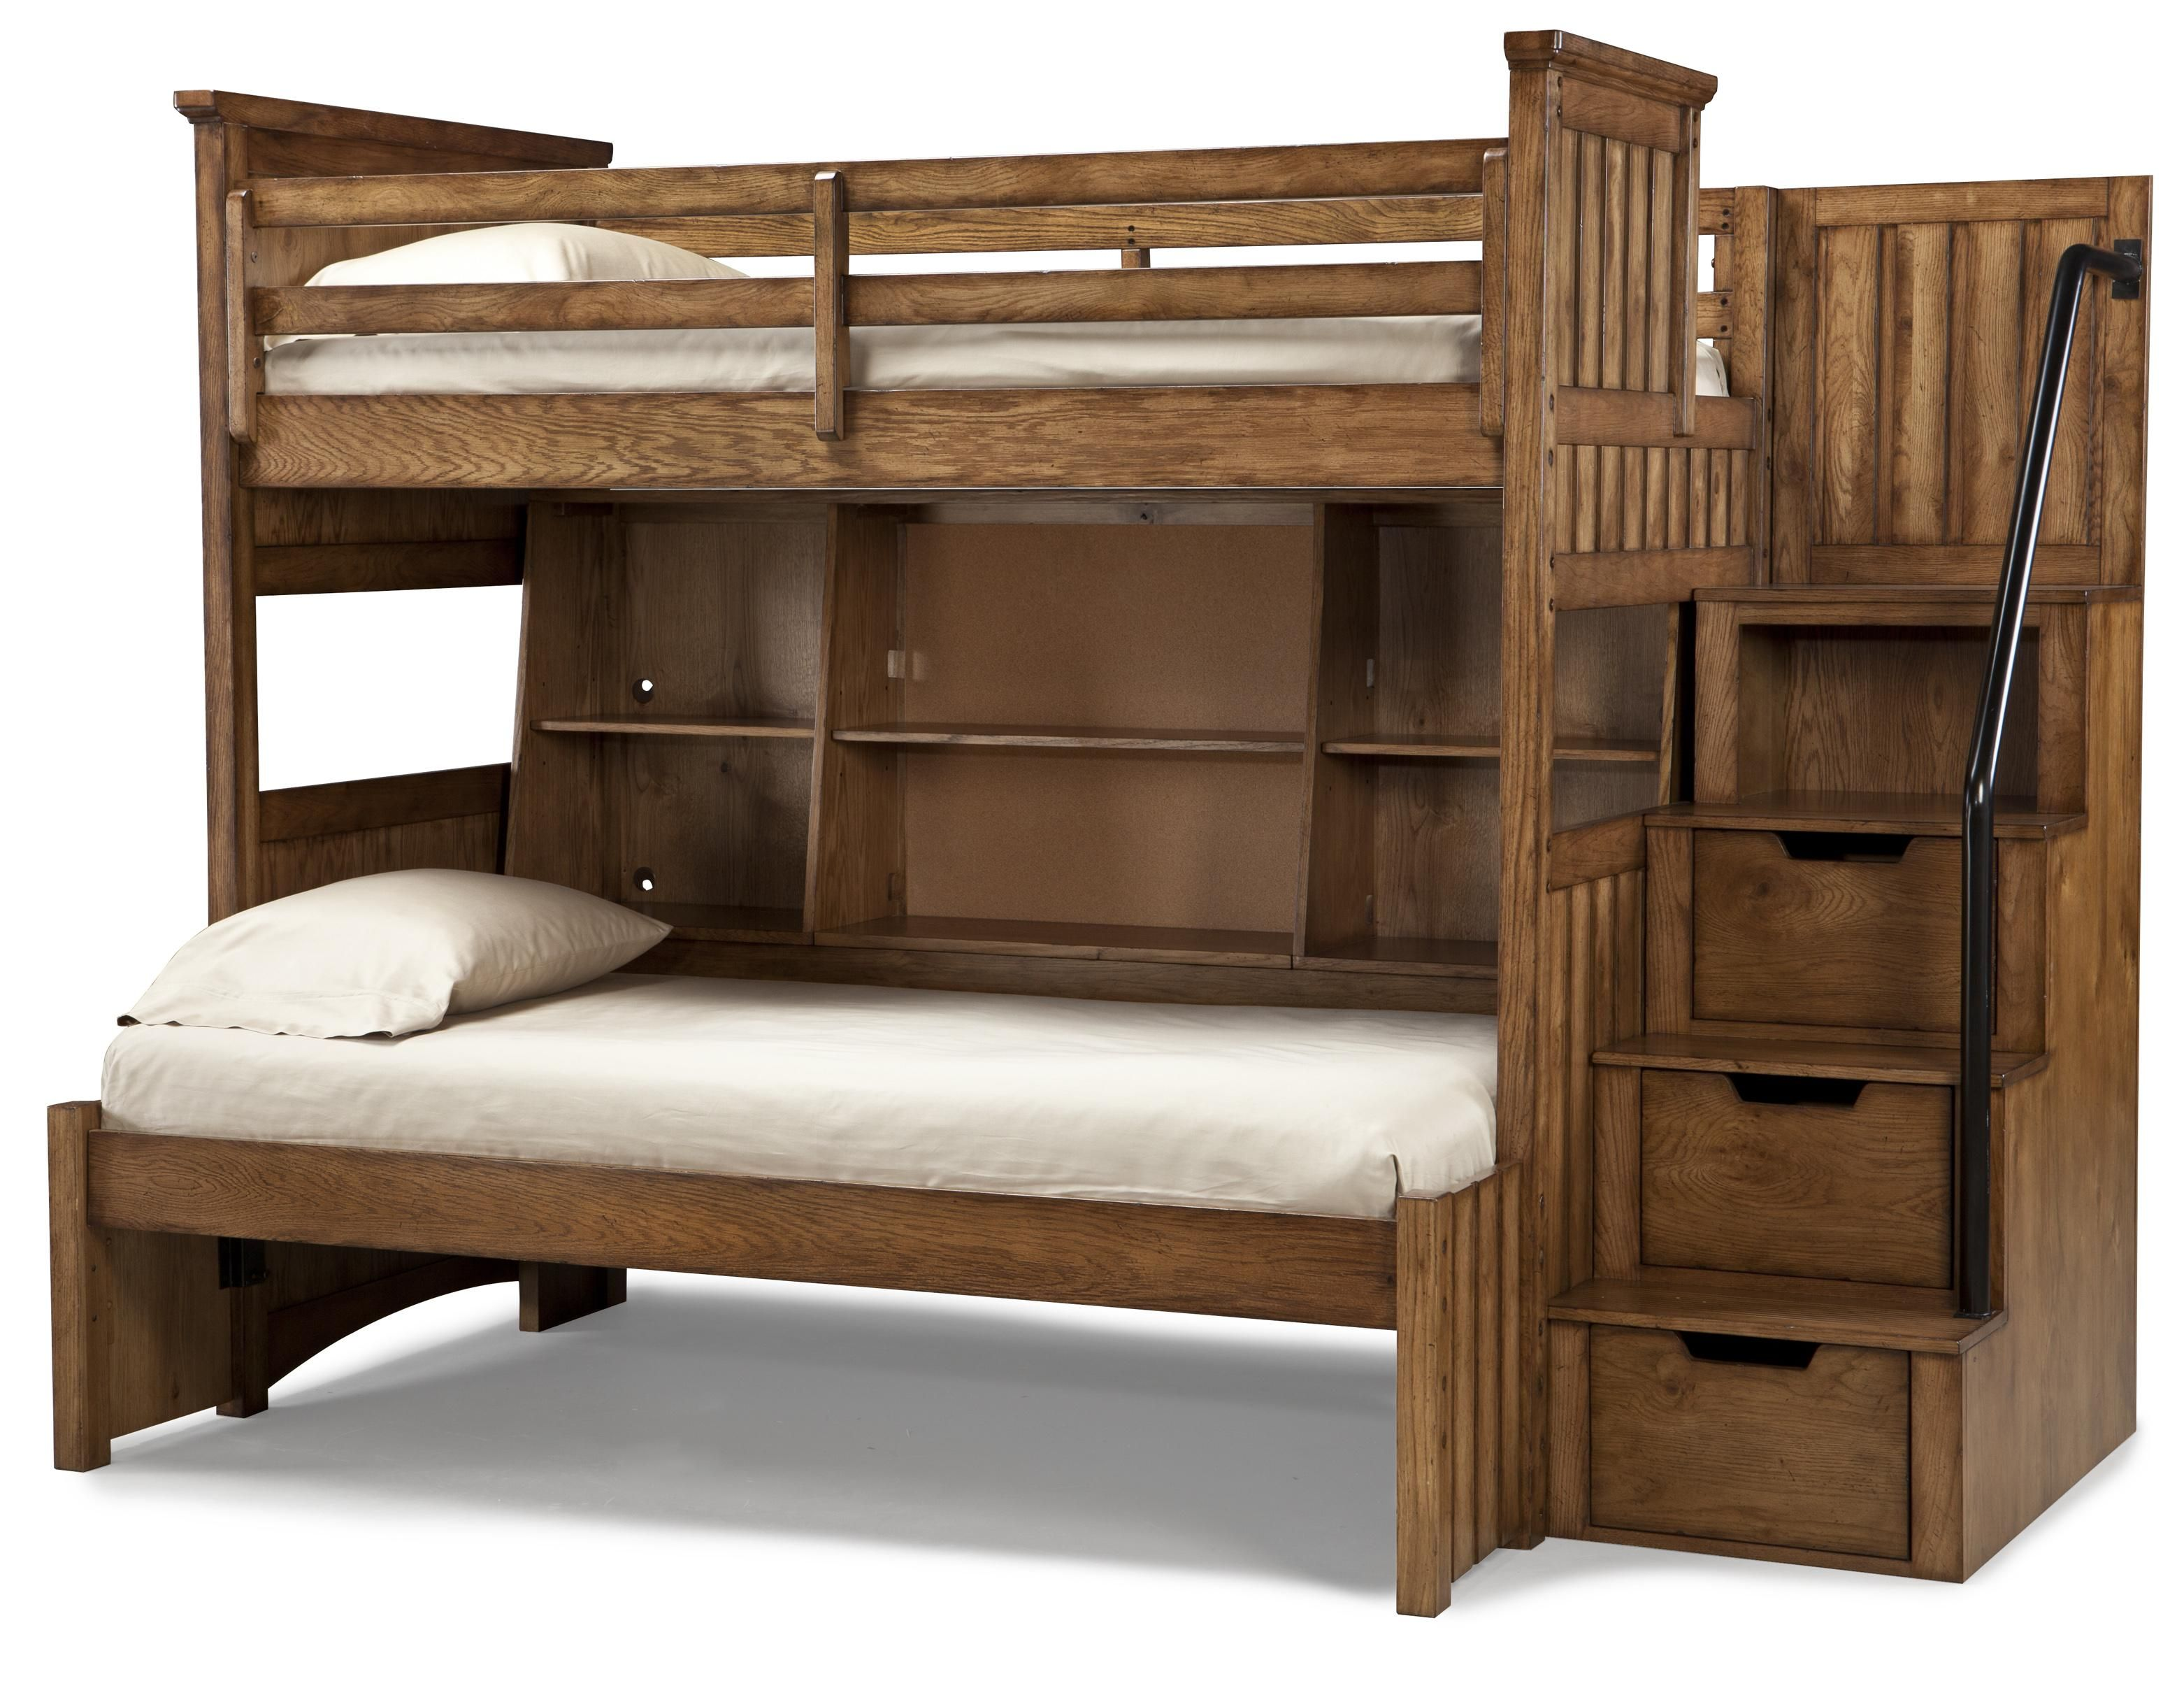 Classic wooden unfinished bunk beds with stairs hidden for Furniture and beds